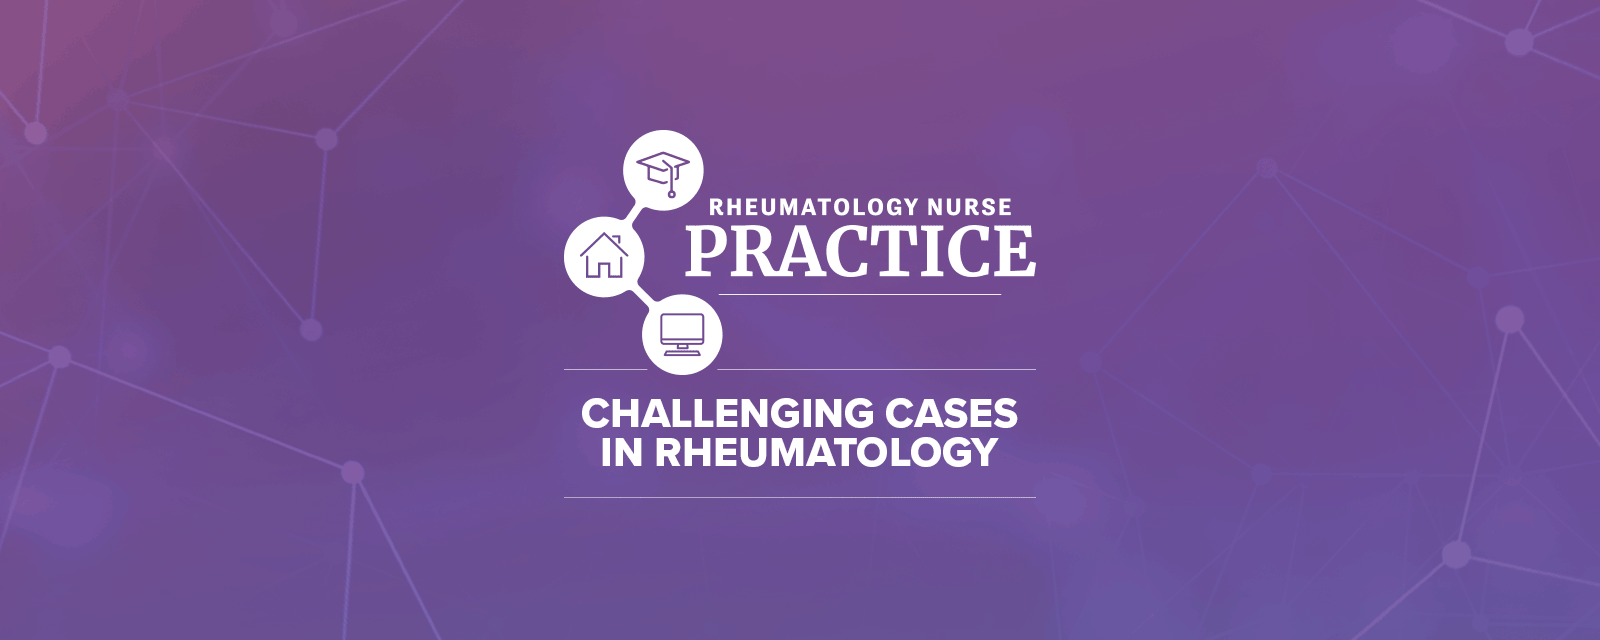 Challenging Cases in Rheumatology: 17 Year Old Female with Juvenile Idiopathic Arthritis (JIA)